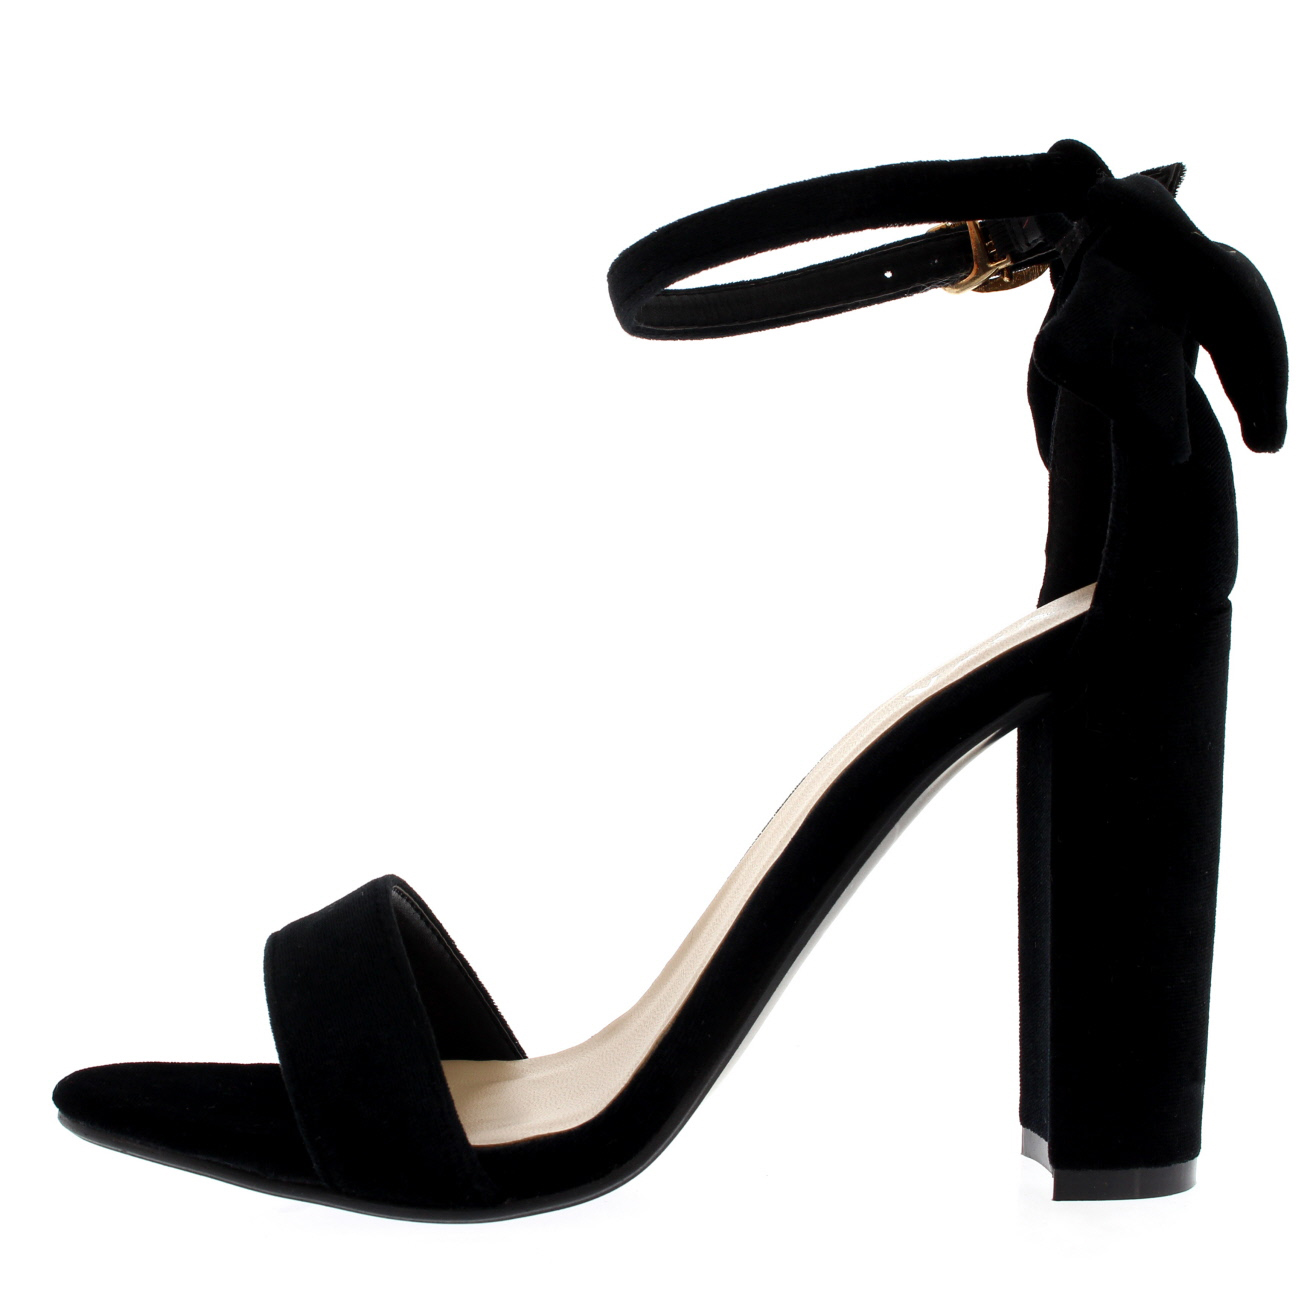 8e30a30dd34 Womens Barely There Cut Out Open Toe Bow Ankle Strap Block Heel ...